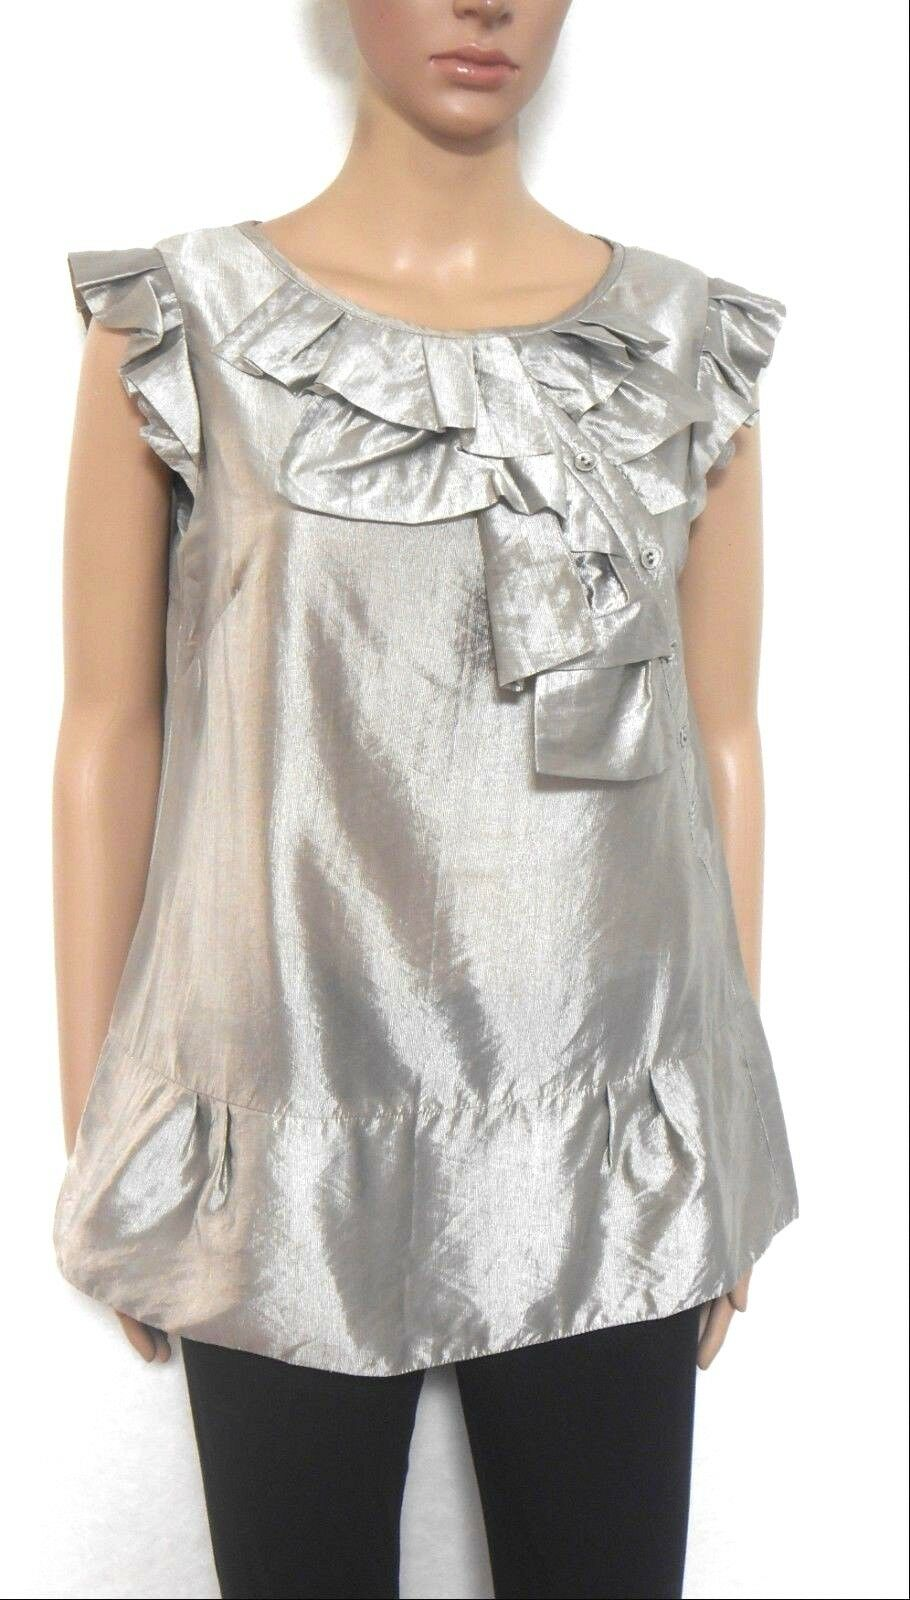 Cue metallic silvery grey tunic top, sz. 10 - with wide front frill, exc. cnd.